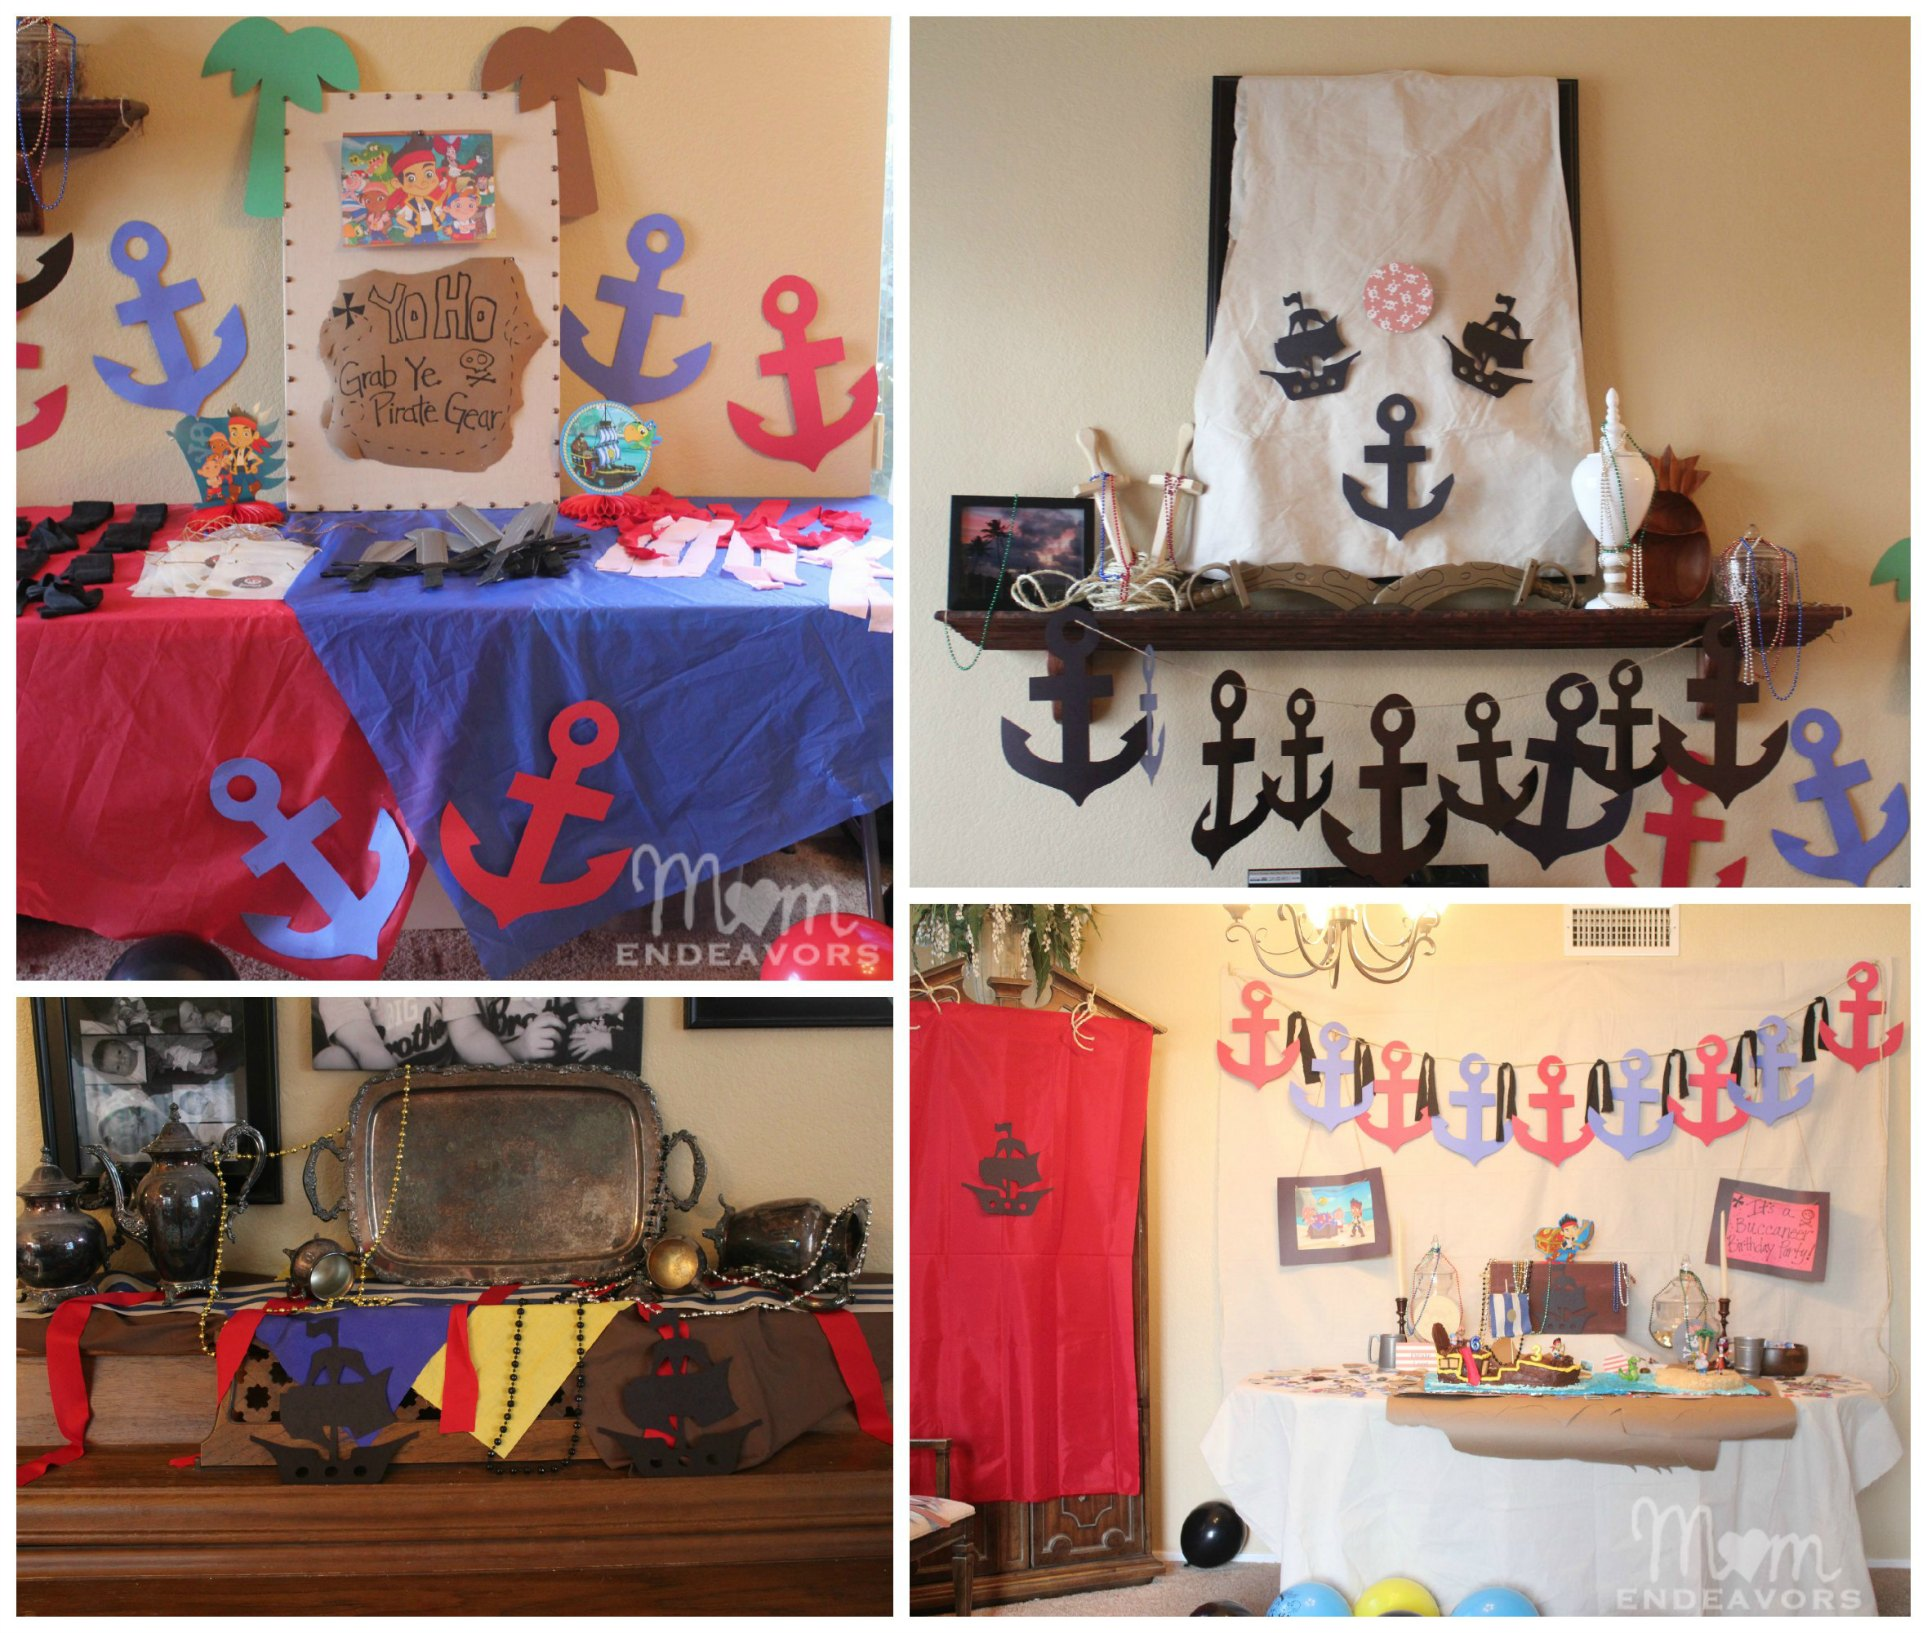 jake and the never land pirates birthday party. Black Bedroom Furniture Sets. Home Design Ideas